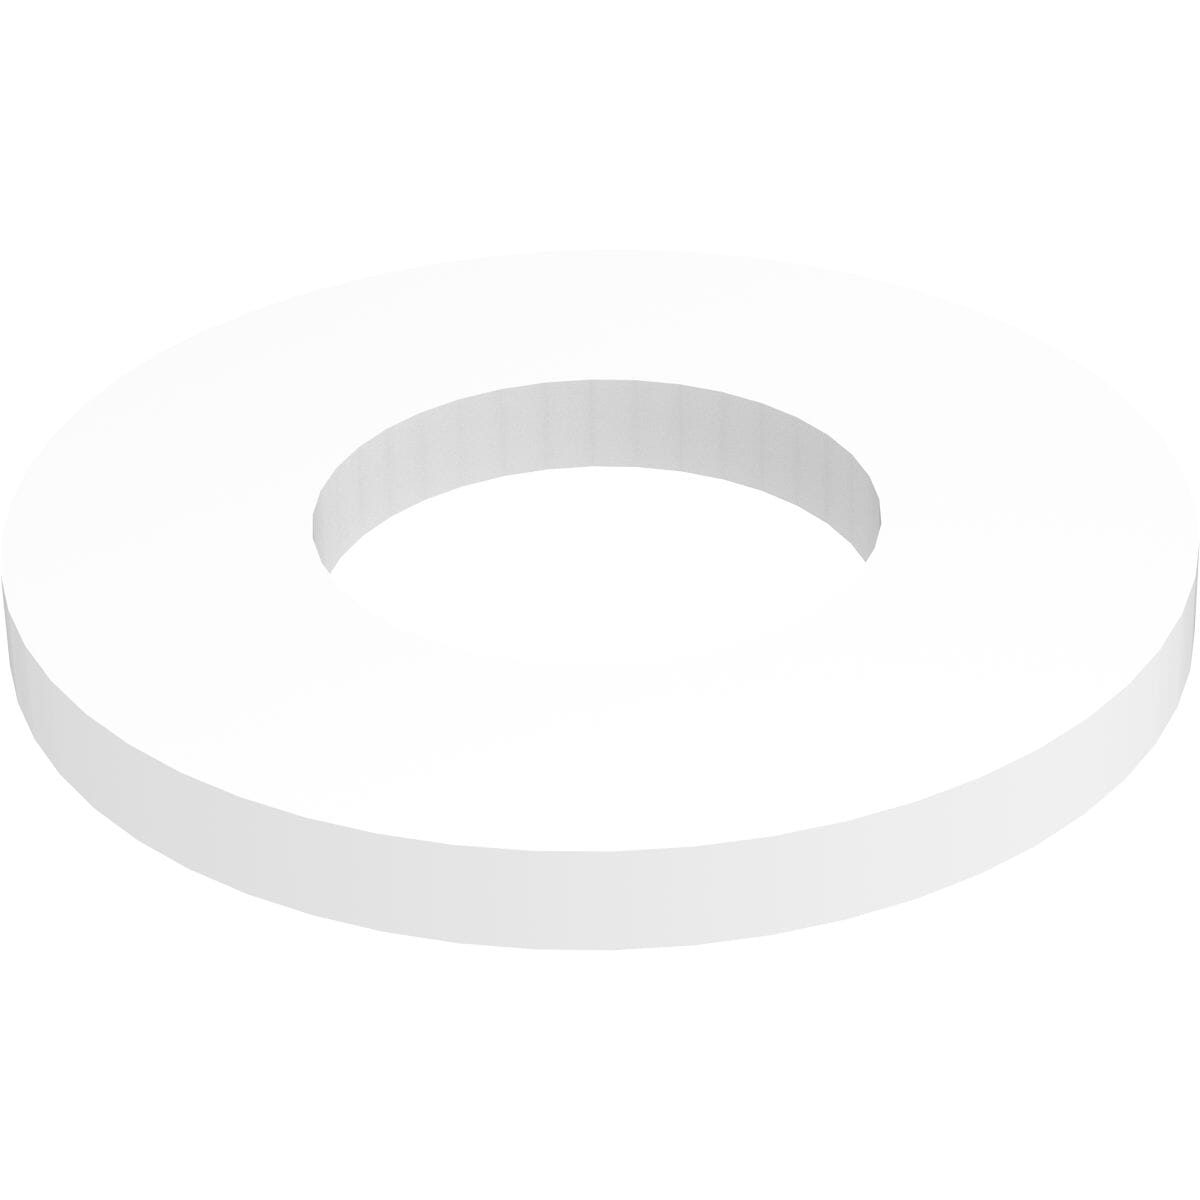 13.3mm x 22mm x 1.5mm Flat Washers - Nylon